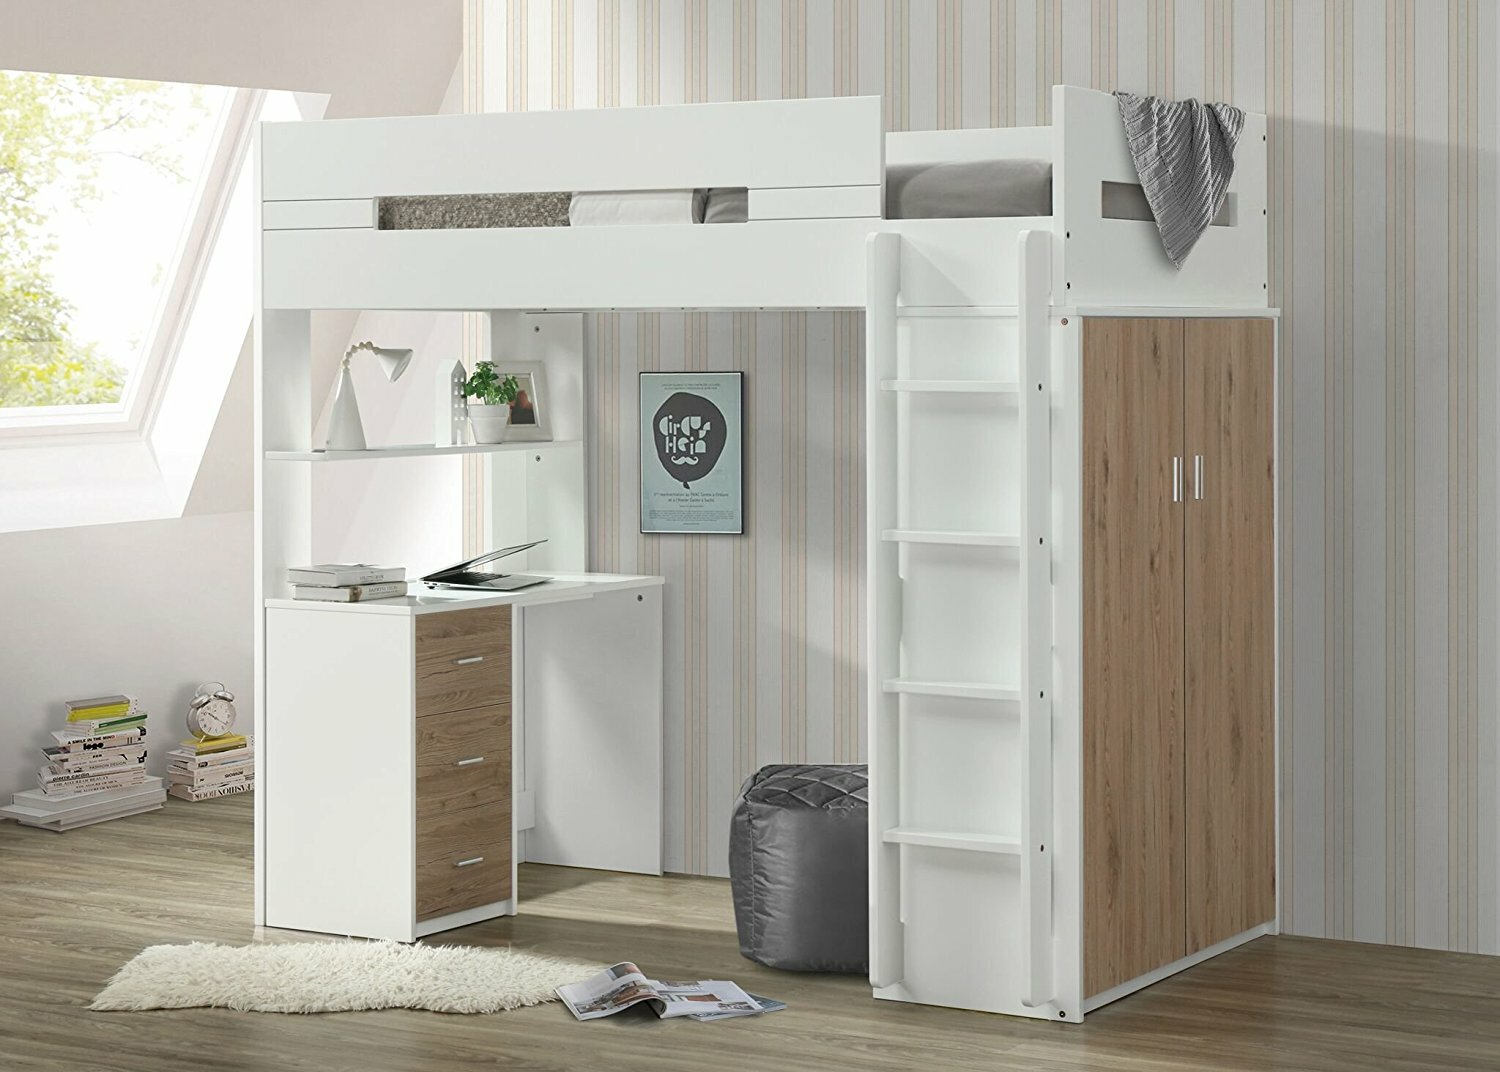 Adne Wooden Twin Loft Bed With Drawers And Desk Shelf And Wardrobe